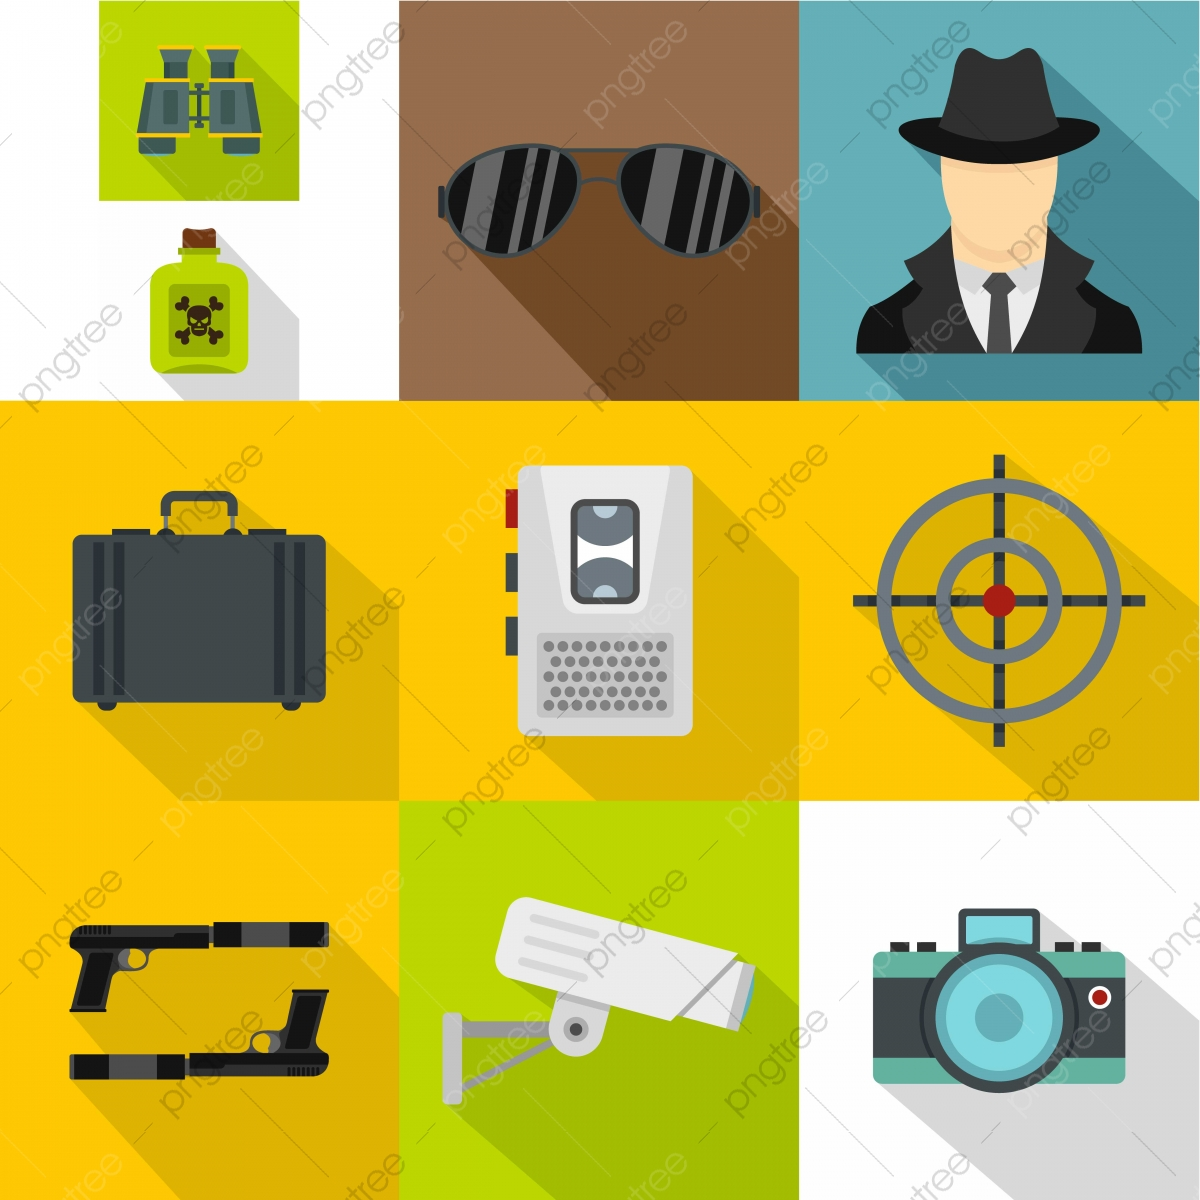 spy png images vector and psd files free download on pngtree https pngtree com freepng spy icons set flat style 5233383 html